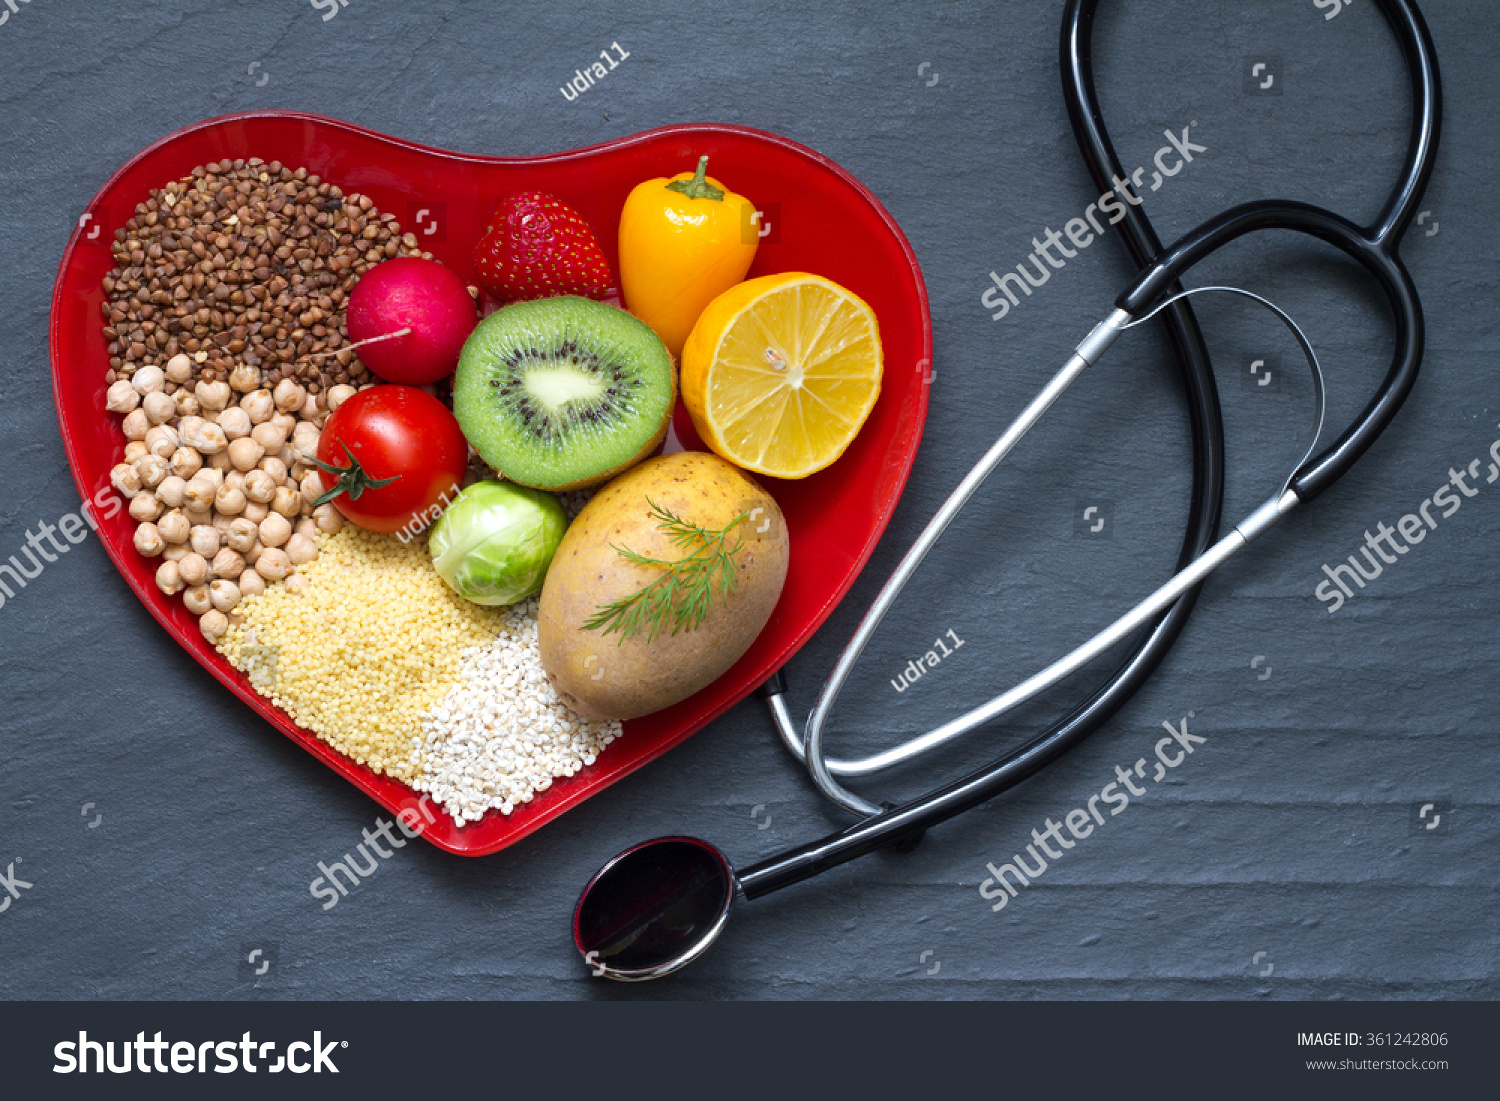 Healthy Food Heart Images